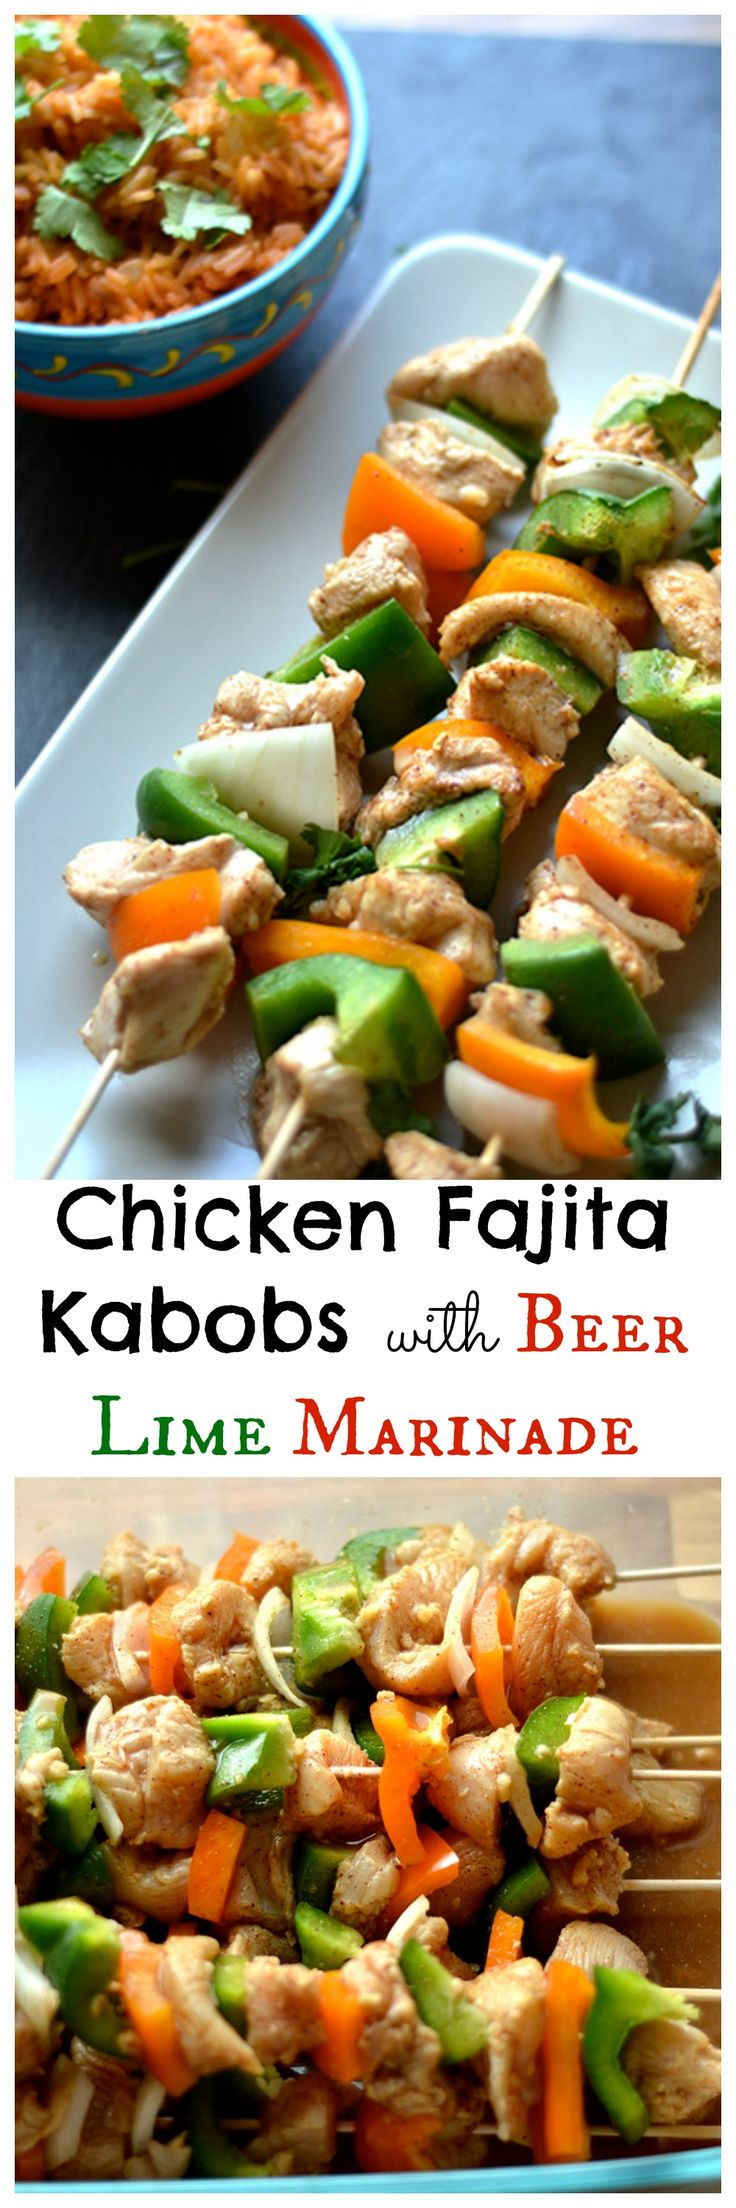 Chicken Fajita Kabobs | Recipe | Kabobs, Beer and Dairy